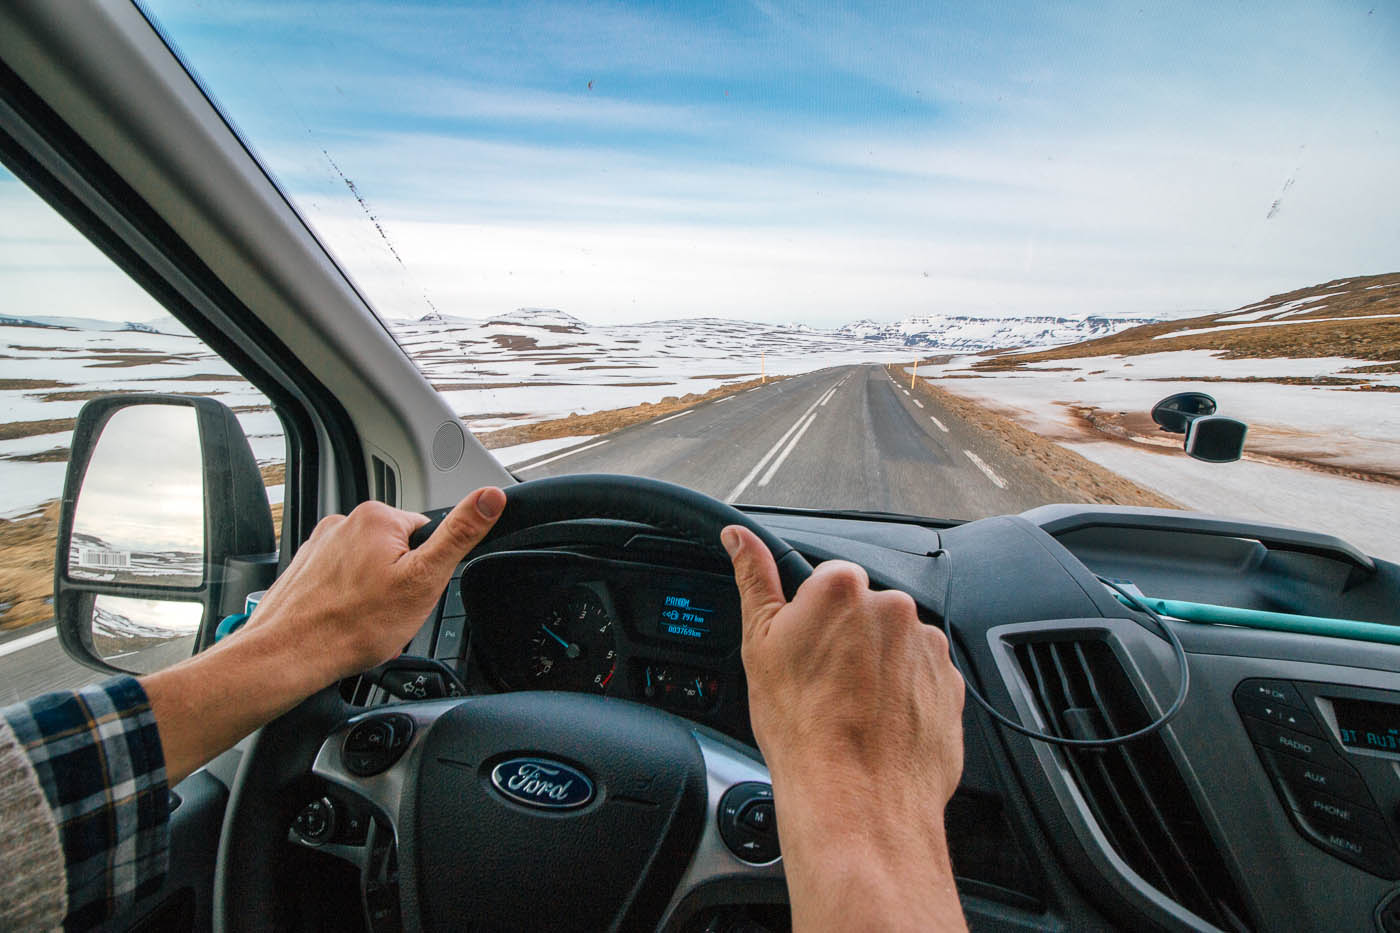 POV shot of driving a campervan on a road in Iceland